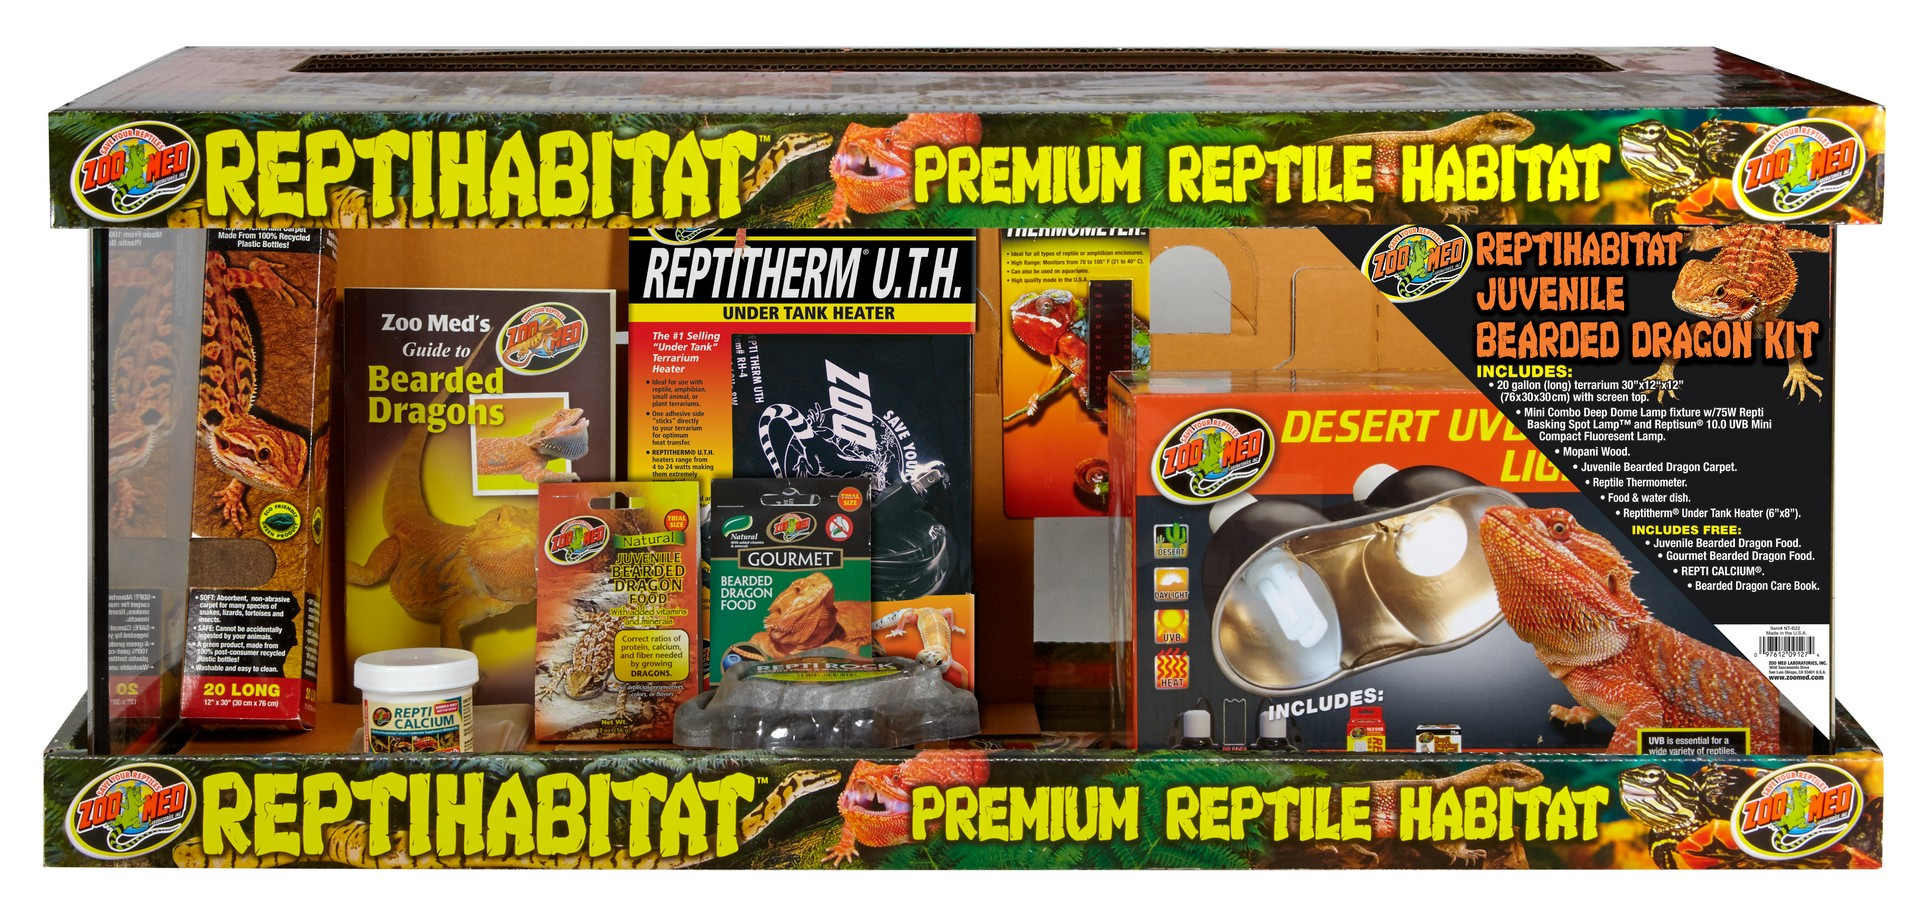 Zoo Med Reptihabitat Premium Reptile Habitat Juvenile Bearded Dragon Kit